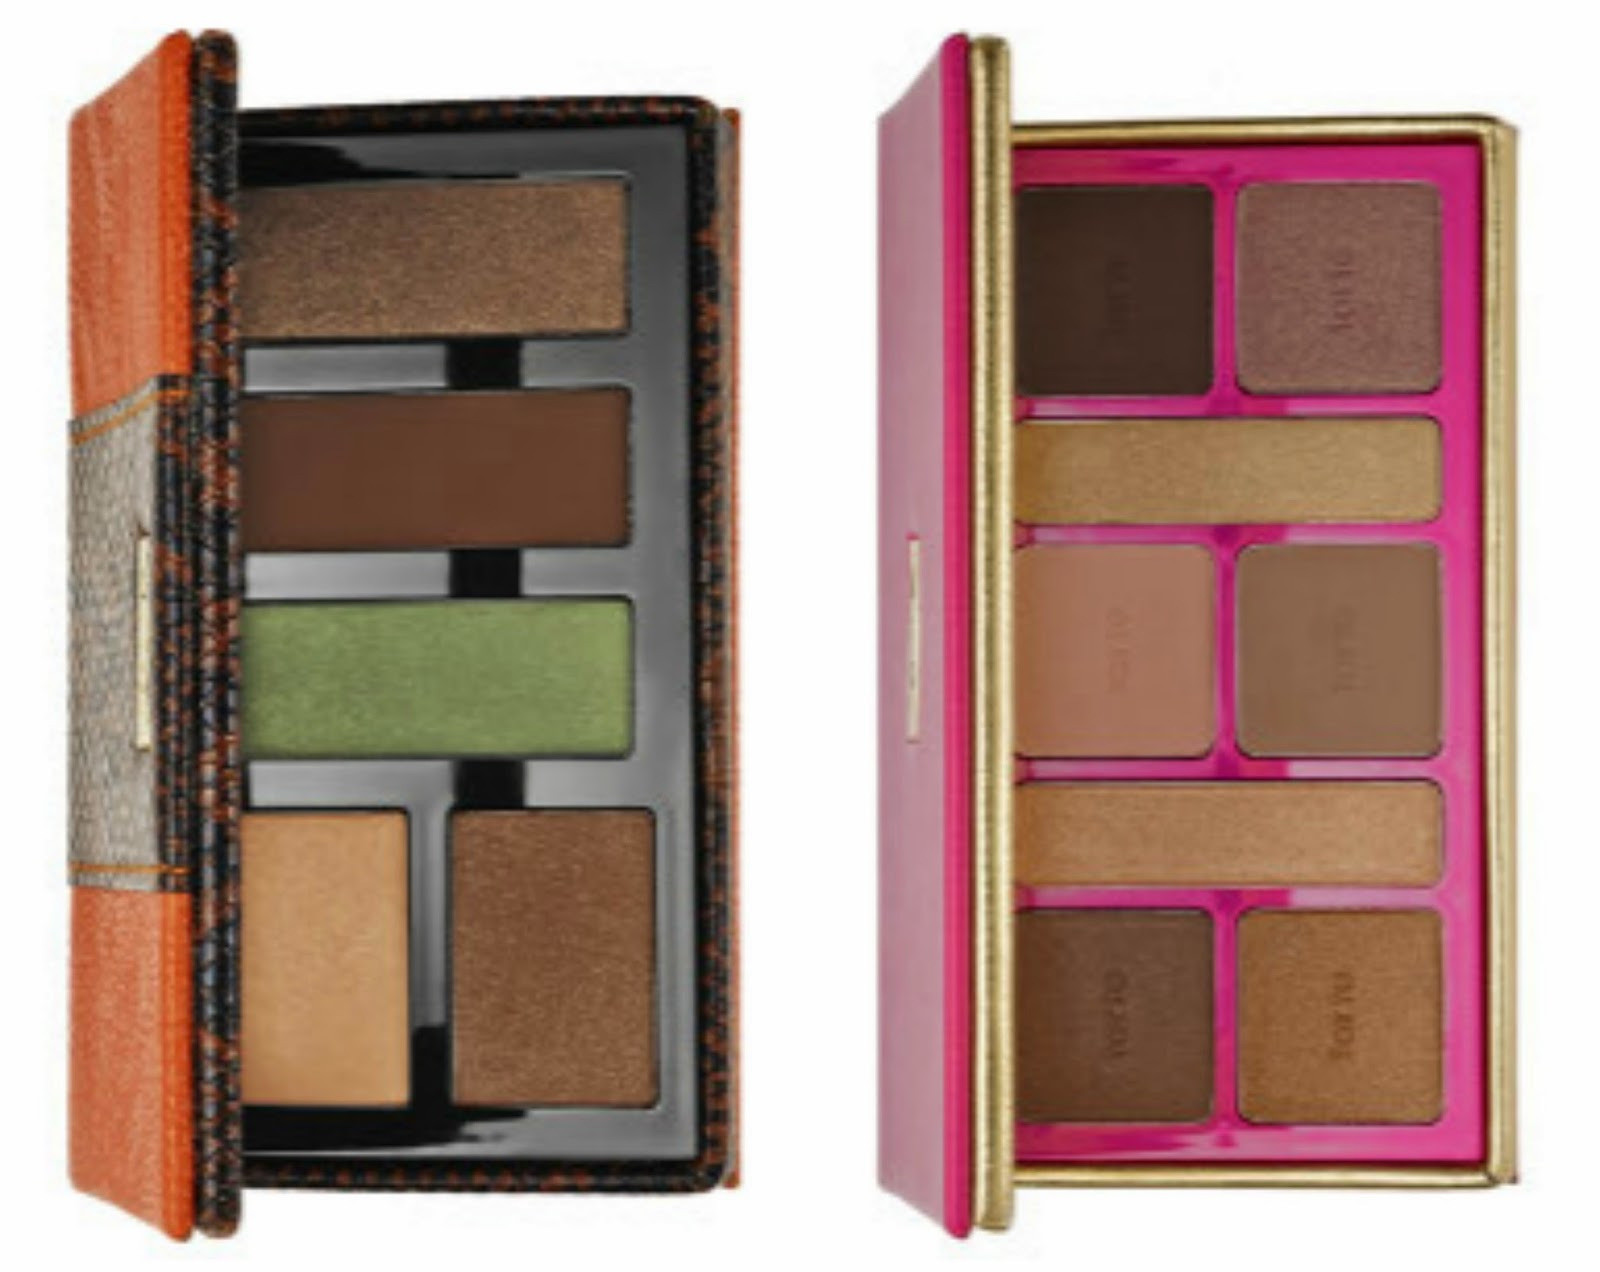 Tarte Cosmetics Quintessentially Travel Chic Shadow Palette, Sephora, Limited Edition, Tarte Cosmetics Sultry Sunset Amazonian Clay Collector's Palette, Sephora, Limited Edition